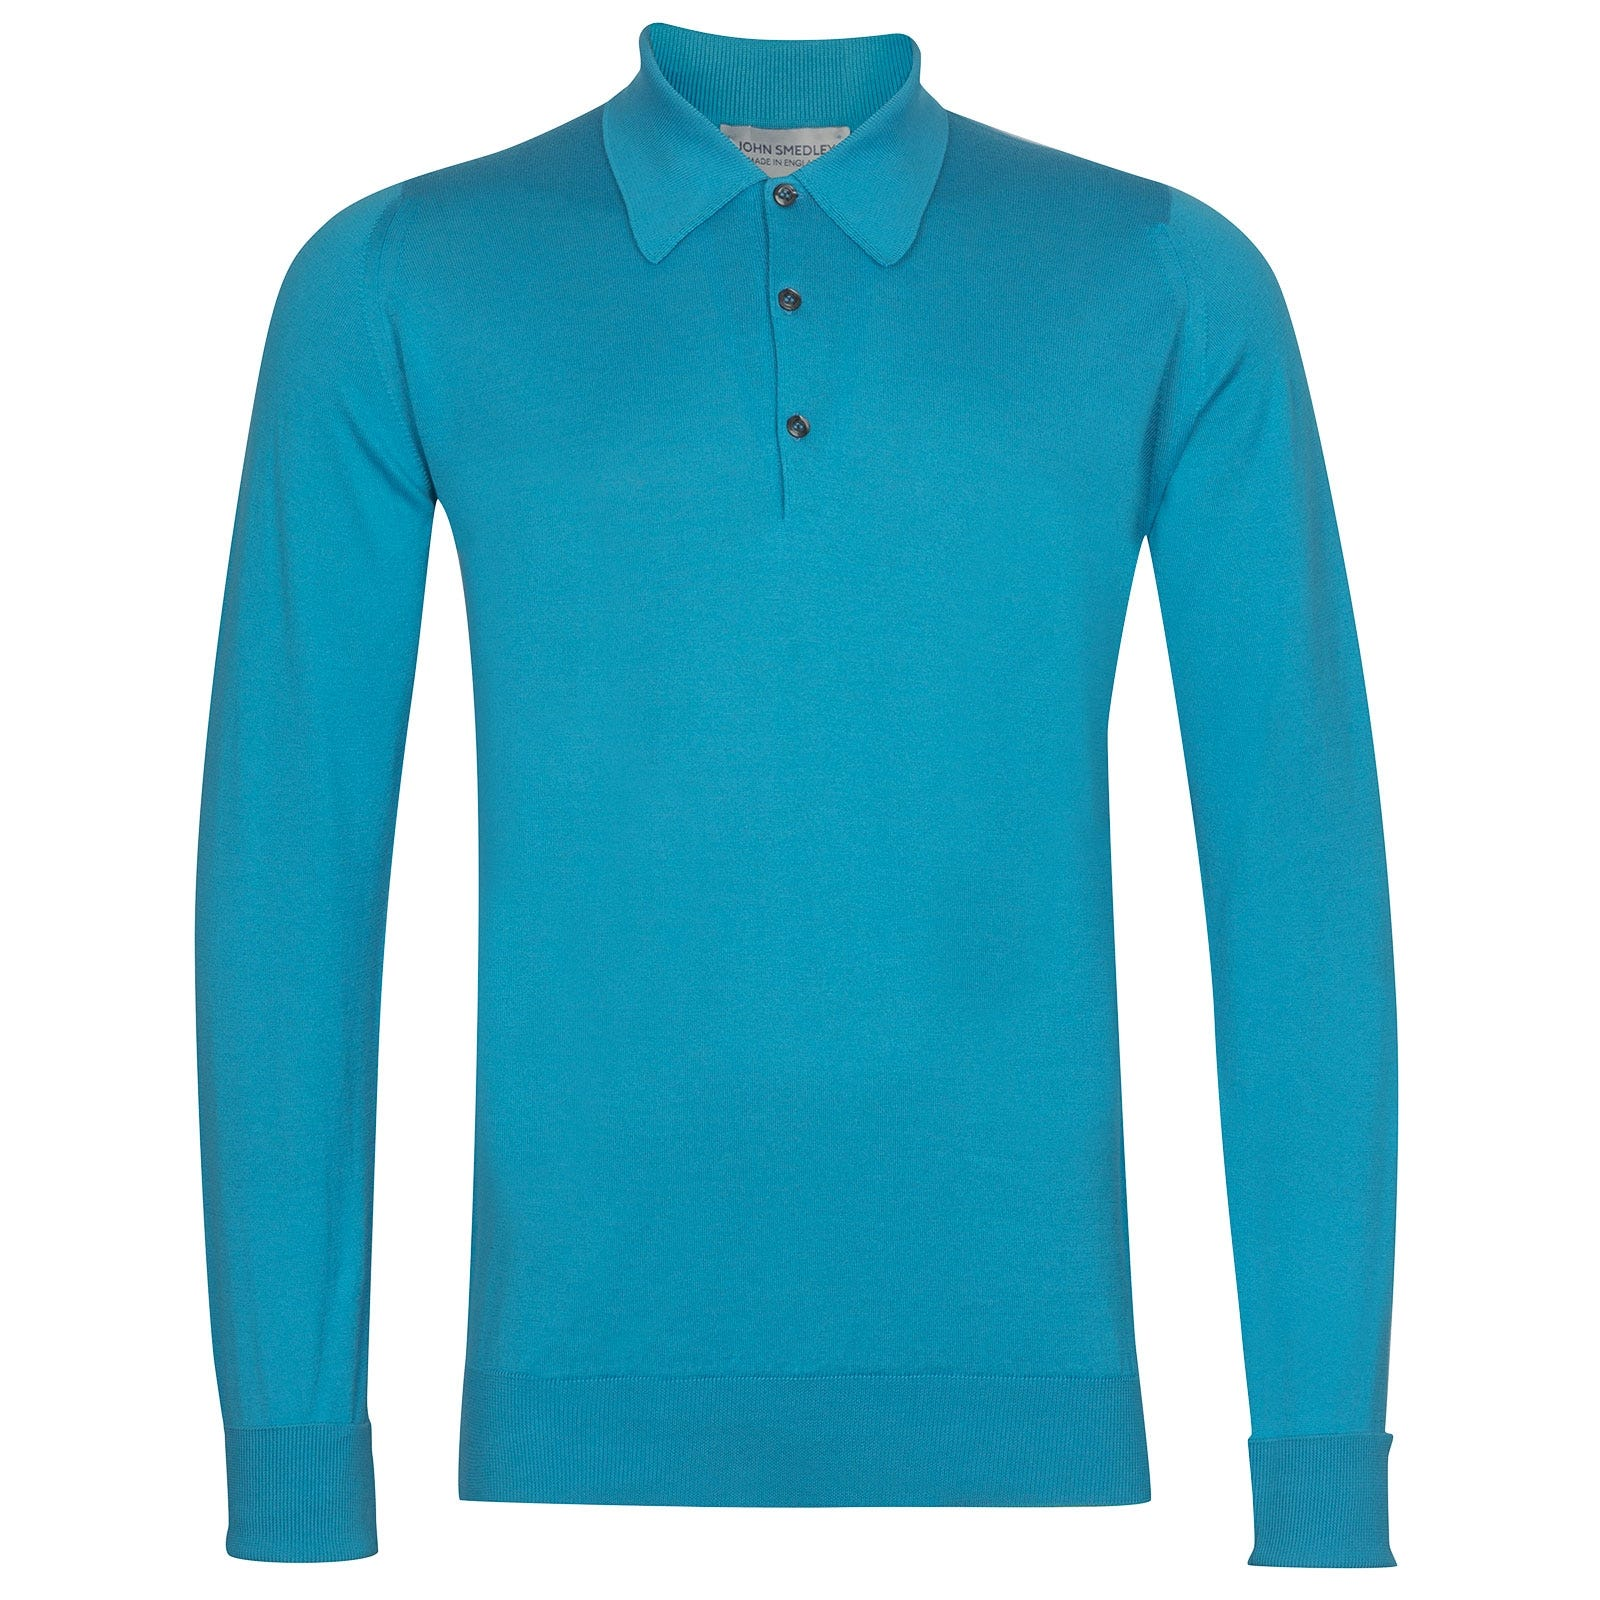 John Smedley Finchley Sea Island Cotton Shirt in Ionize Blue-XXL